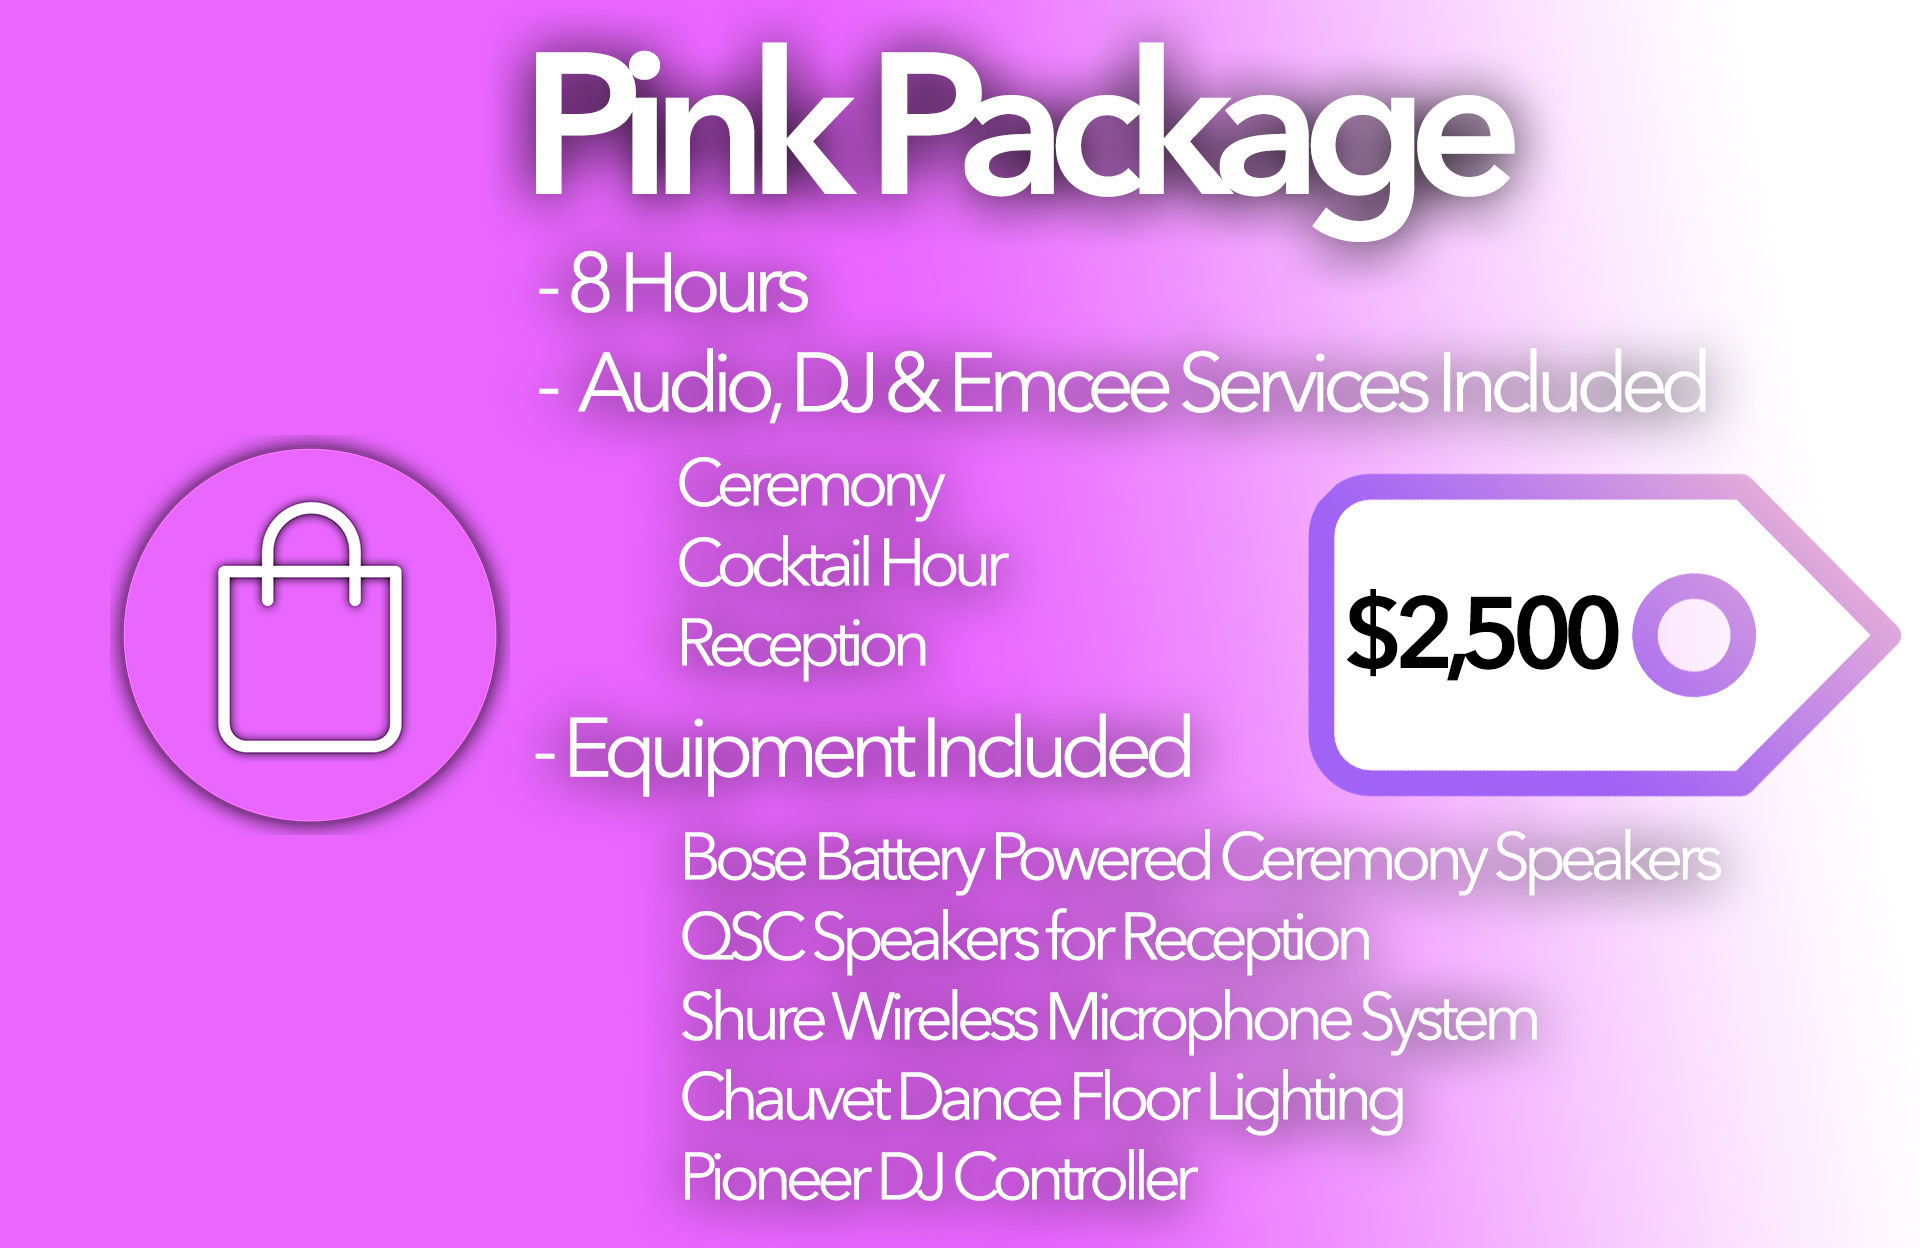 Pink Package Card 2023